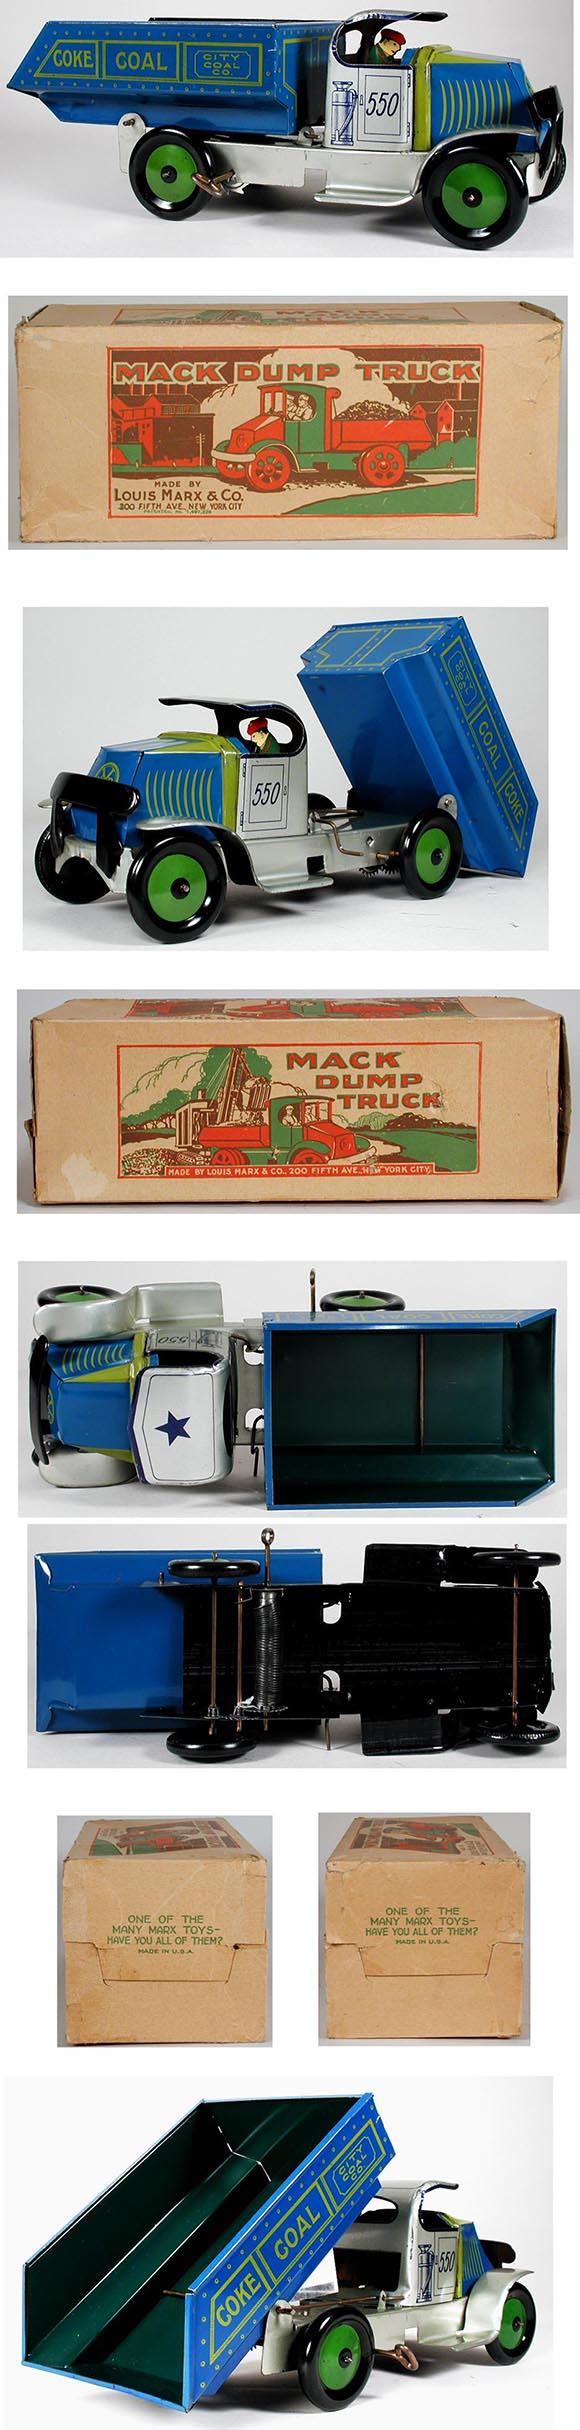 1936 Marx, #550 City Coal Company Mack Dump Truck in Original Box